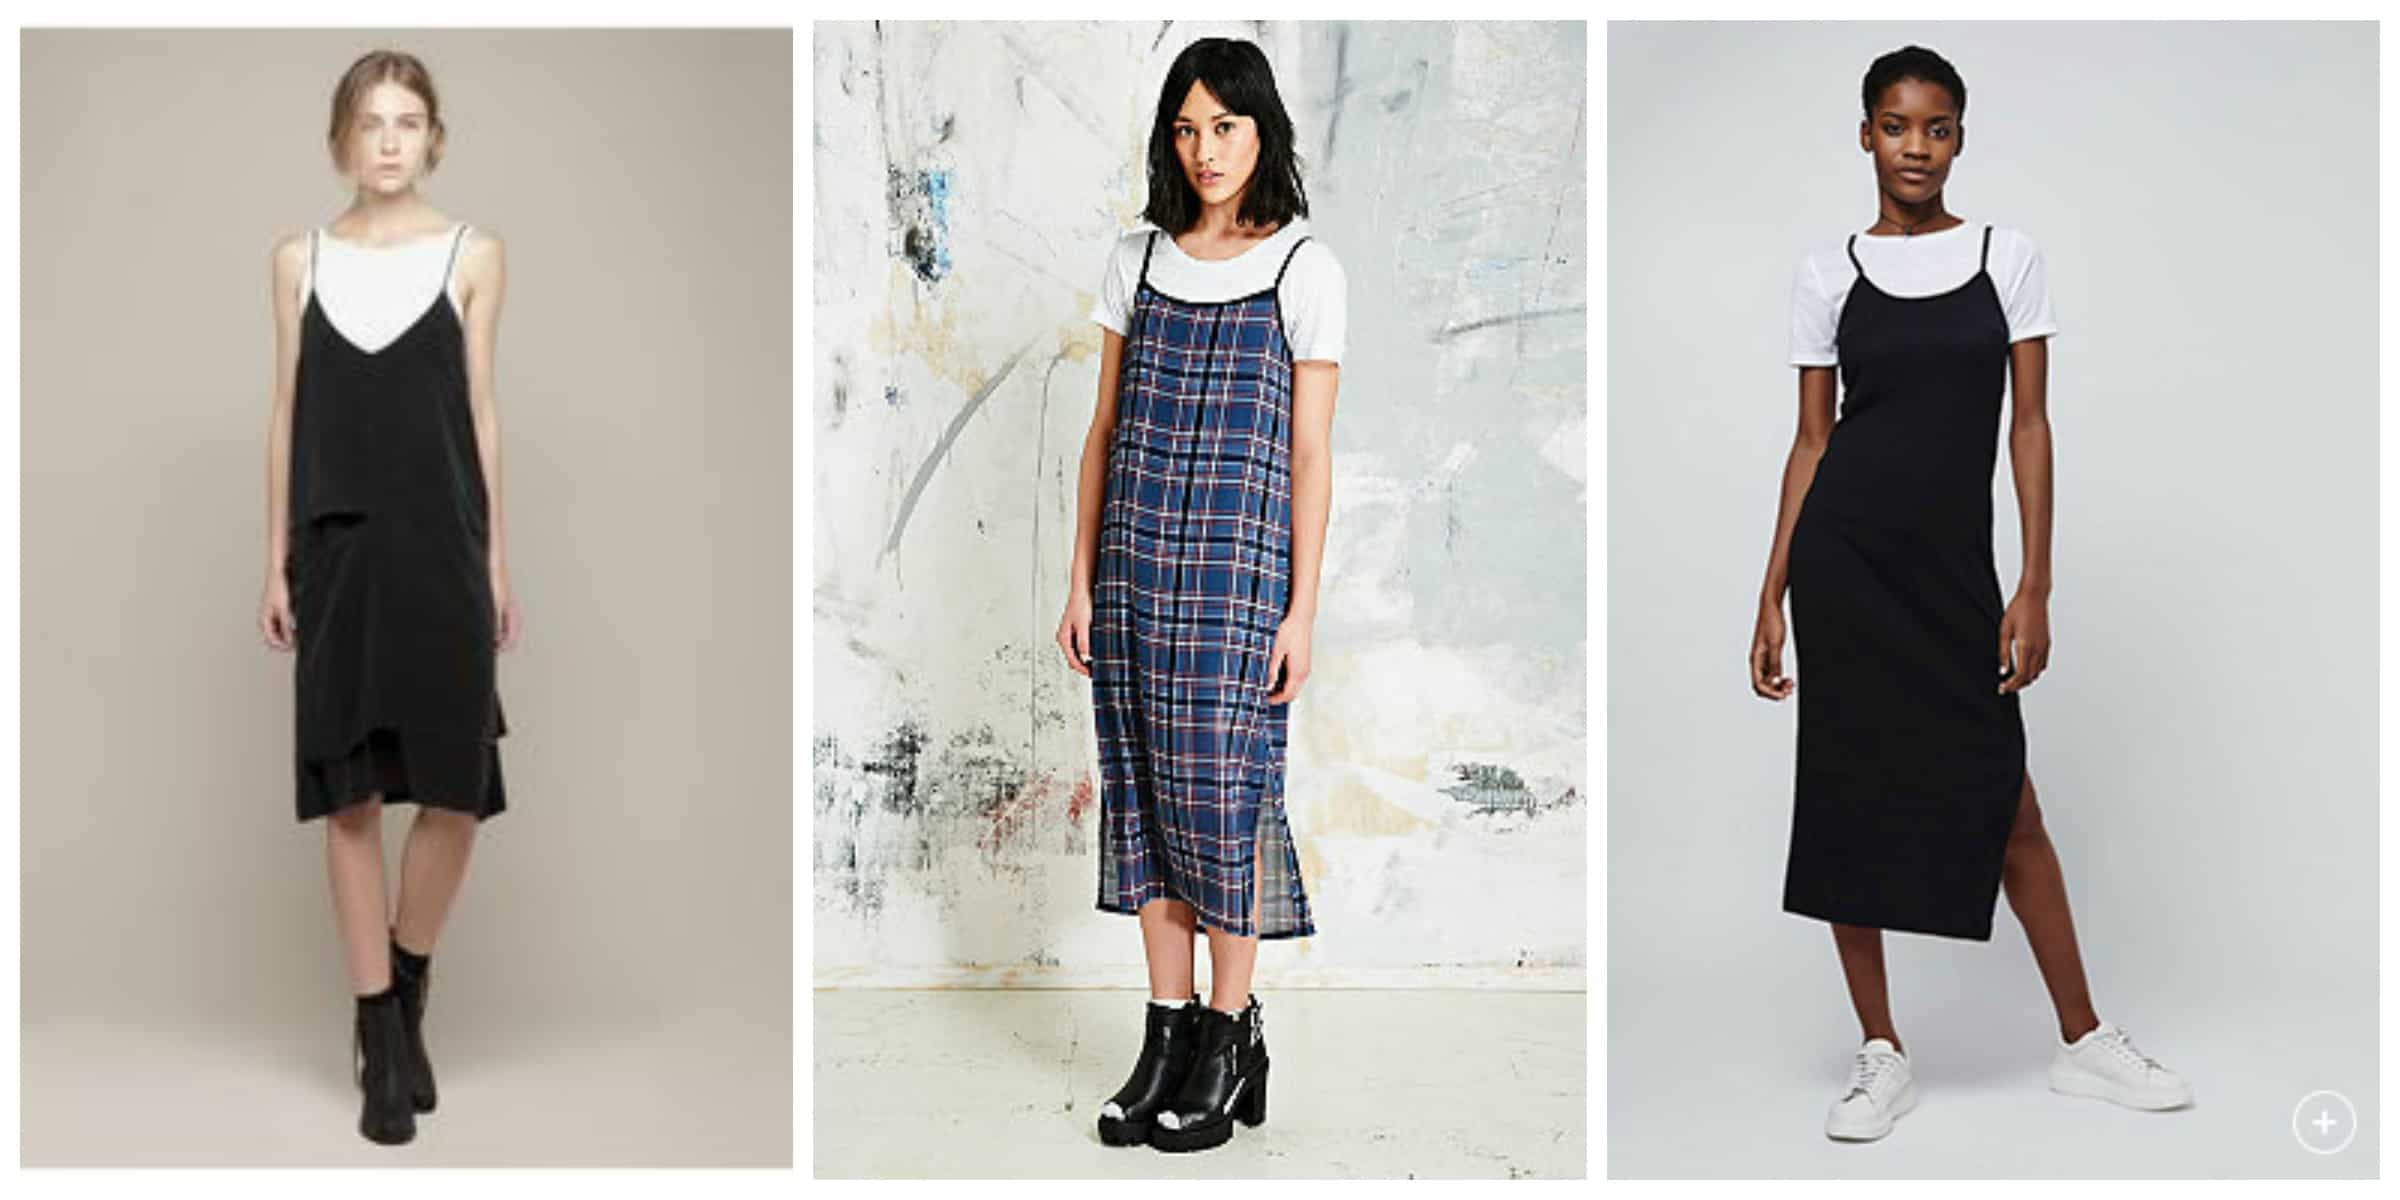 Slip Dresses Over T Shirts This 90s Trend Is Back The Fashion Tag Blog